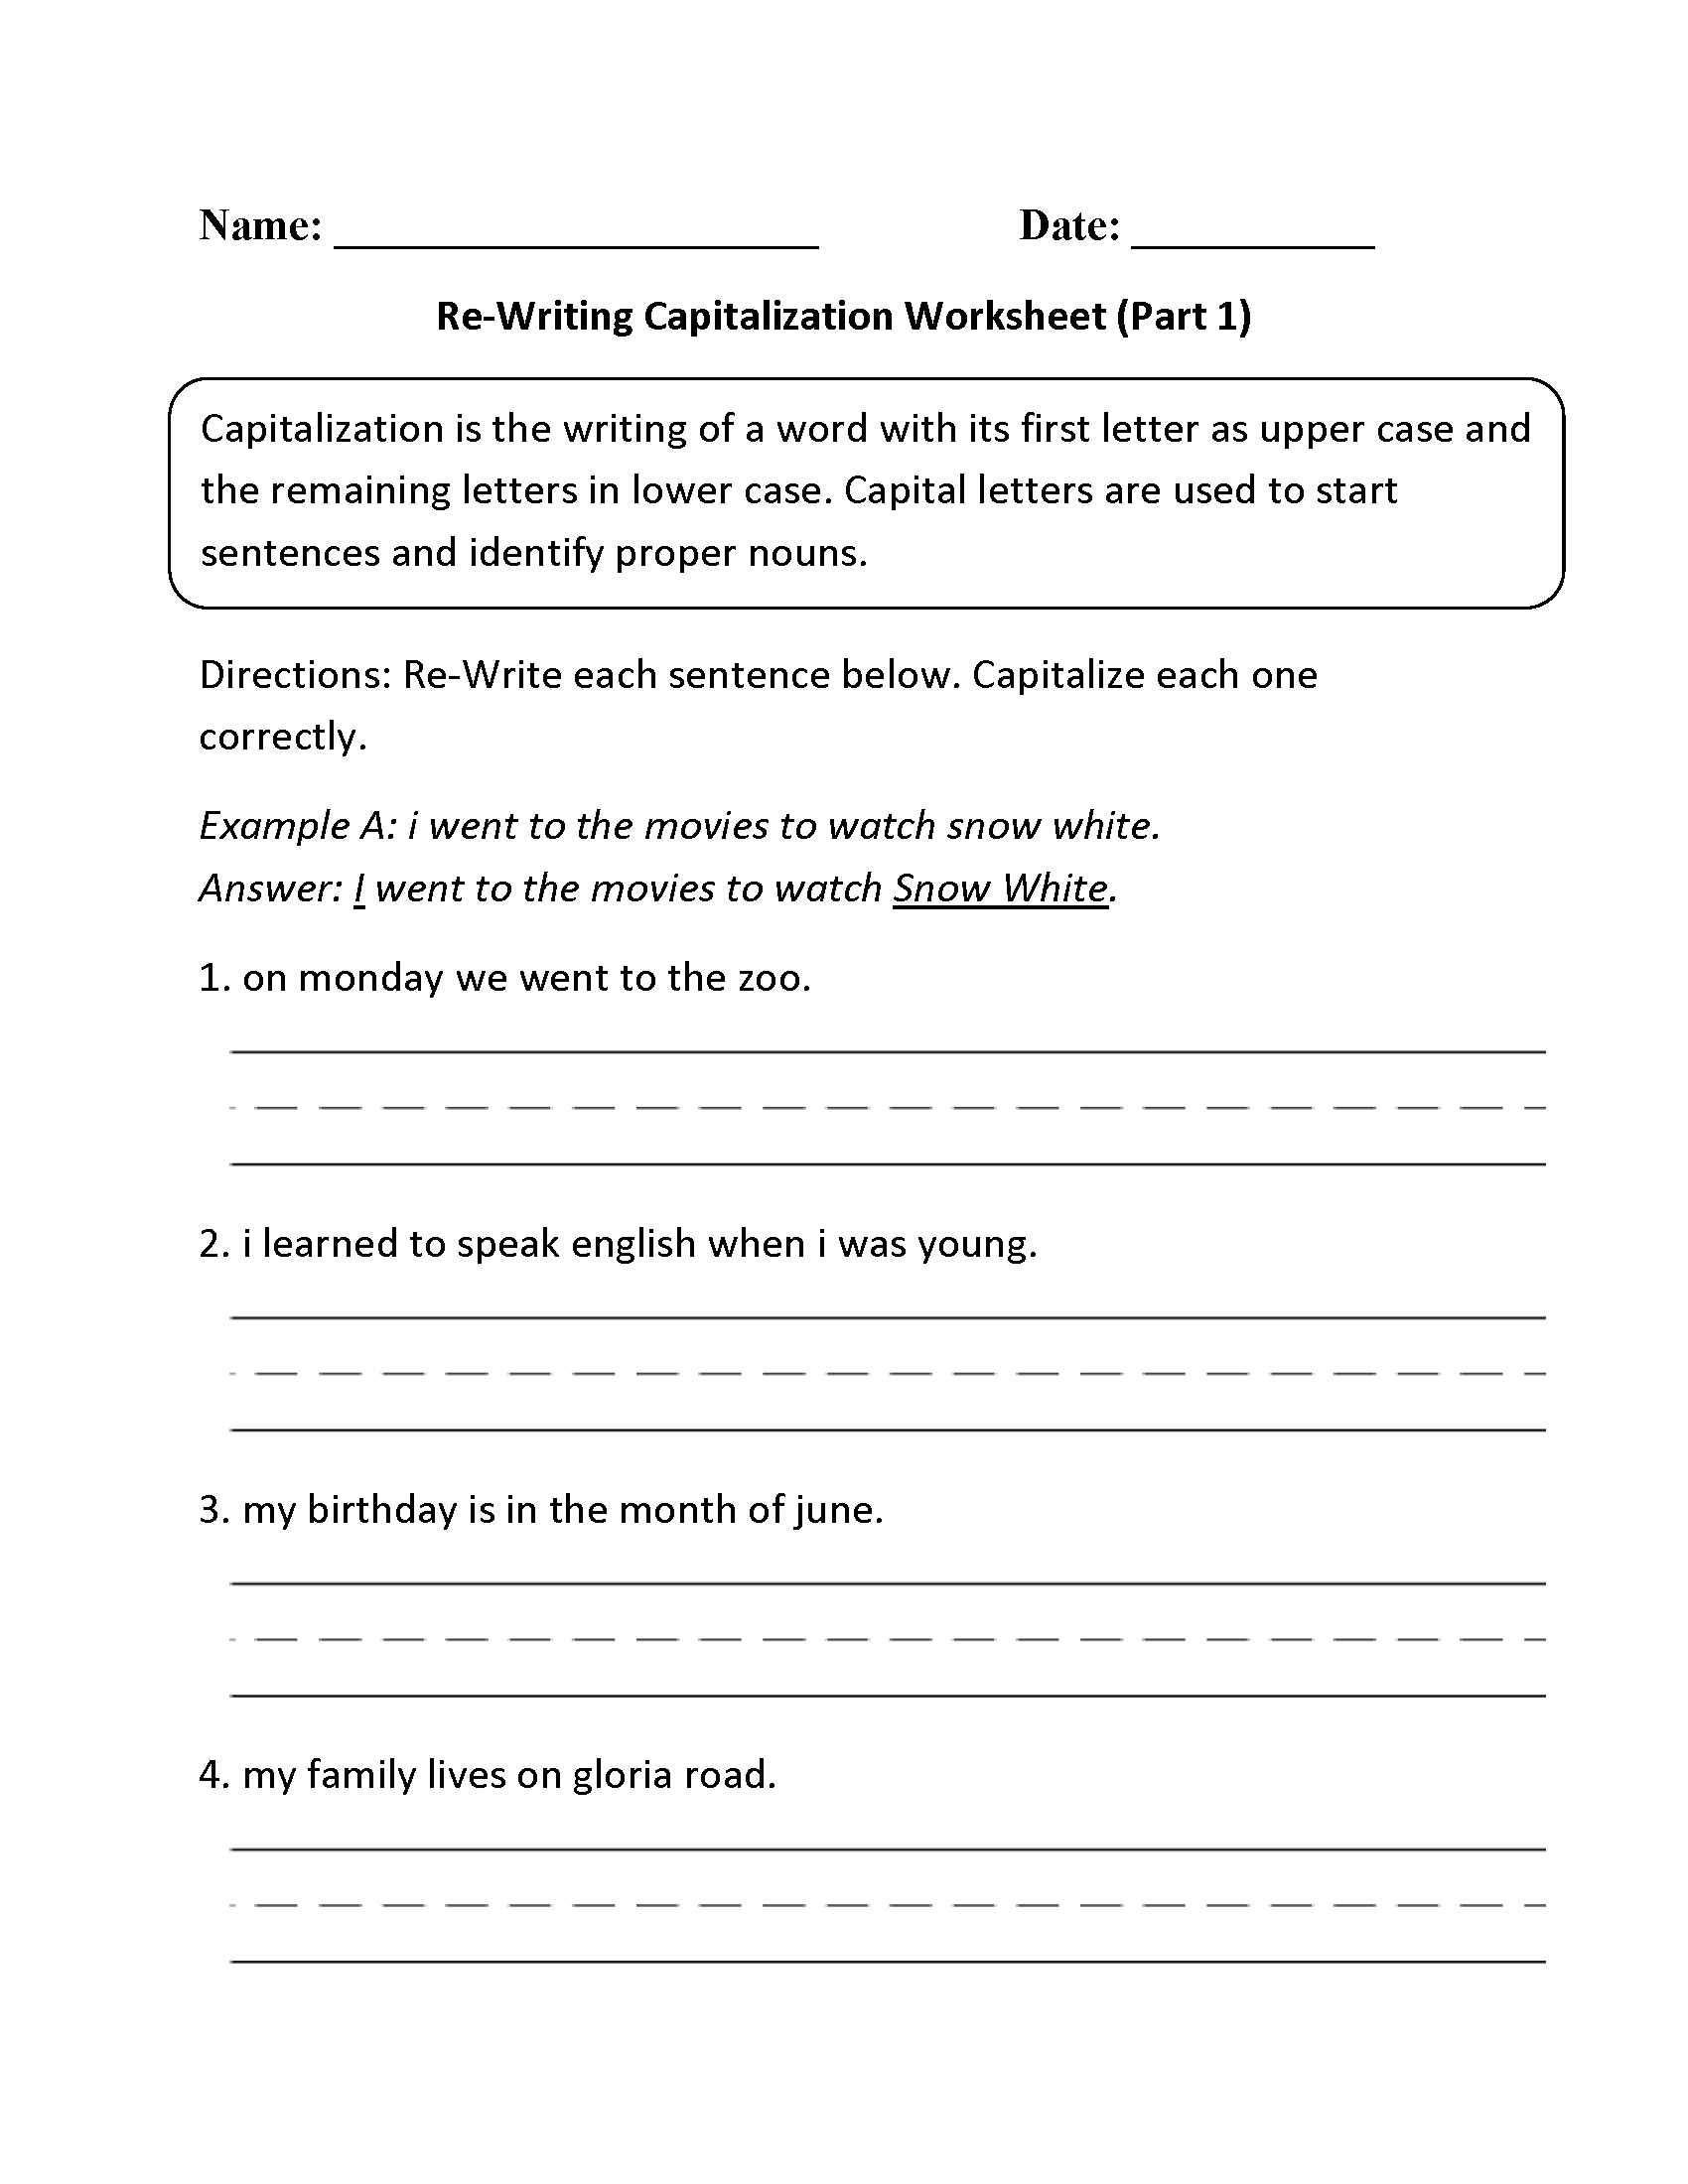 Worksheets Capitalization Worksheets 2nd Grade englishlinx com capitalization worksheets re writing worksheet part 1